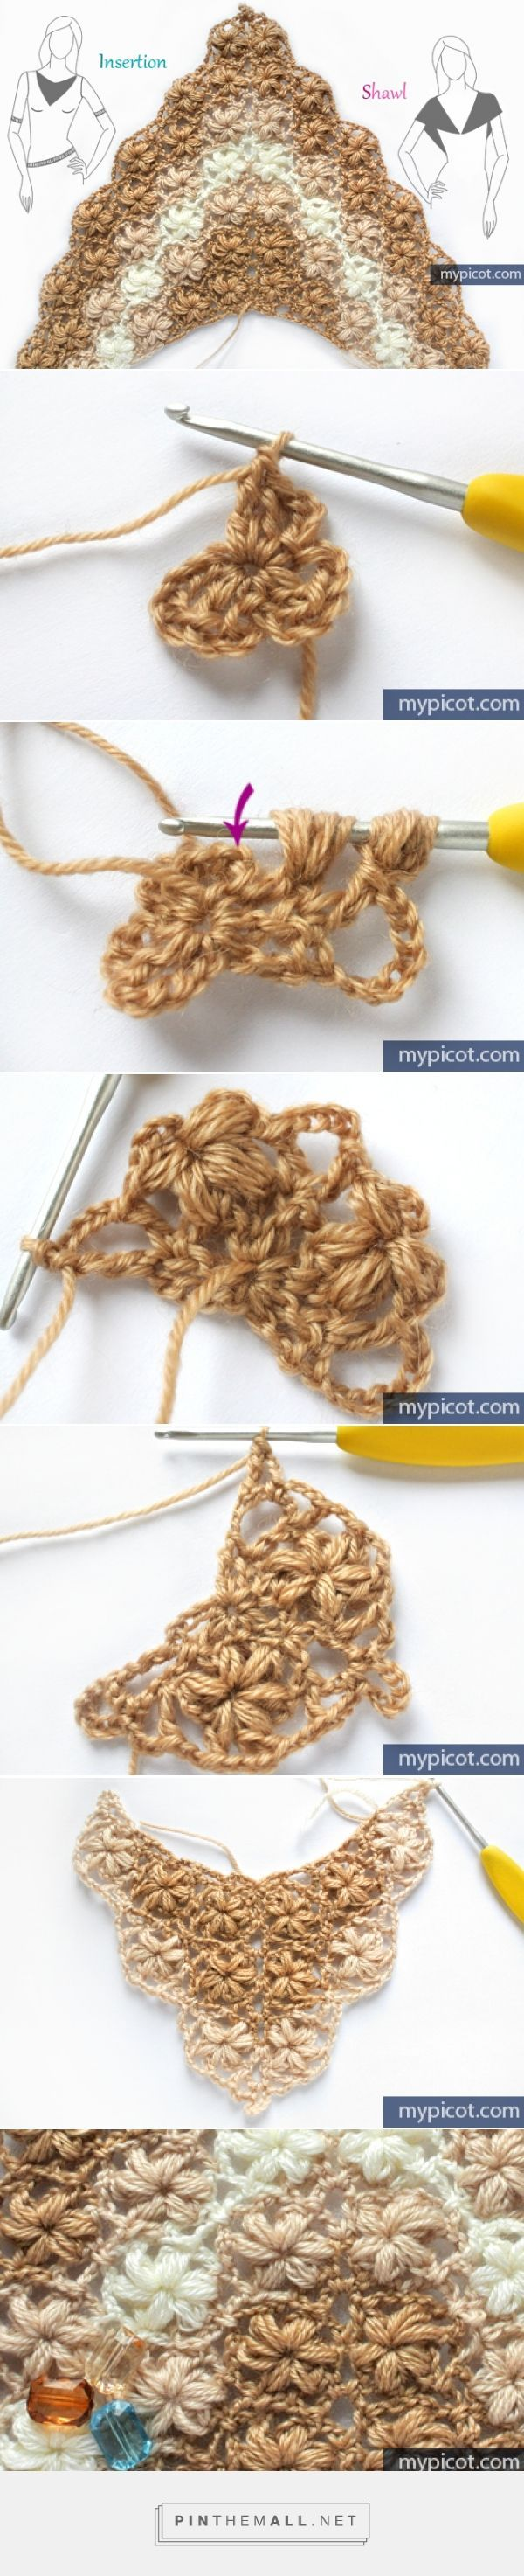 """#Crochet_Stitches -- """"Interesting puff stitch floral pattern from mypicot. Useful for insertion/collar or shawl. Lots more details at site."""" 4U from #KnittingGuru:"""